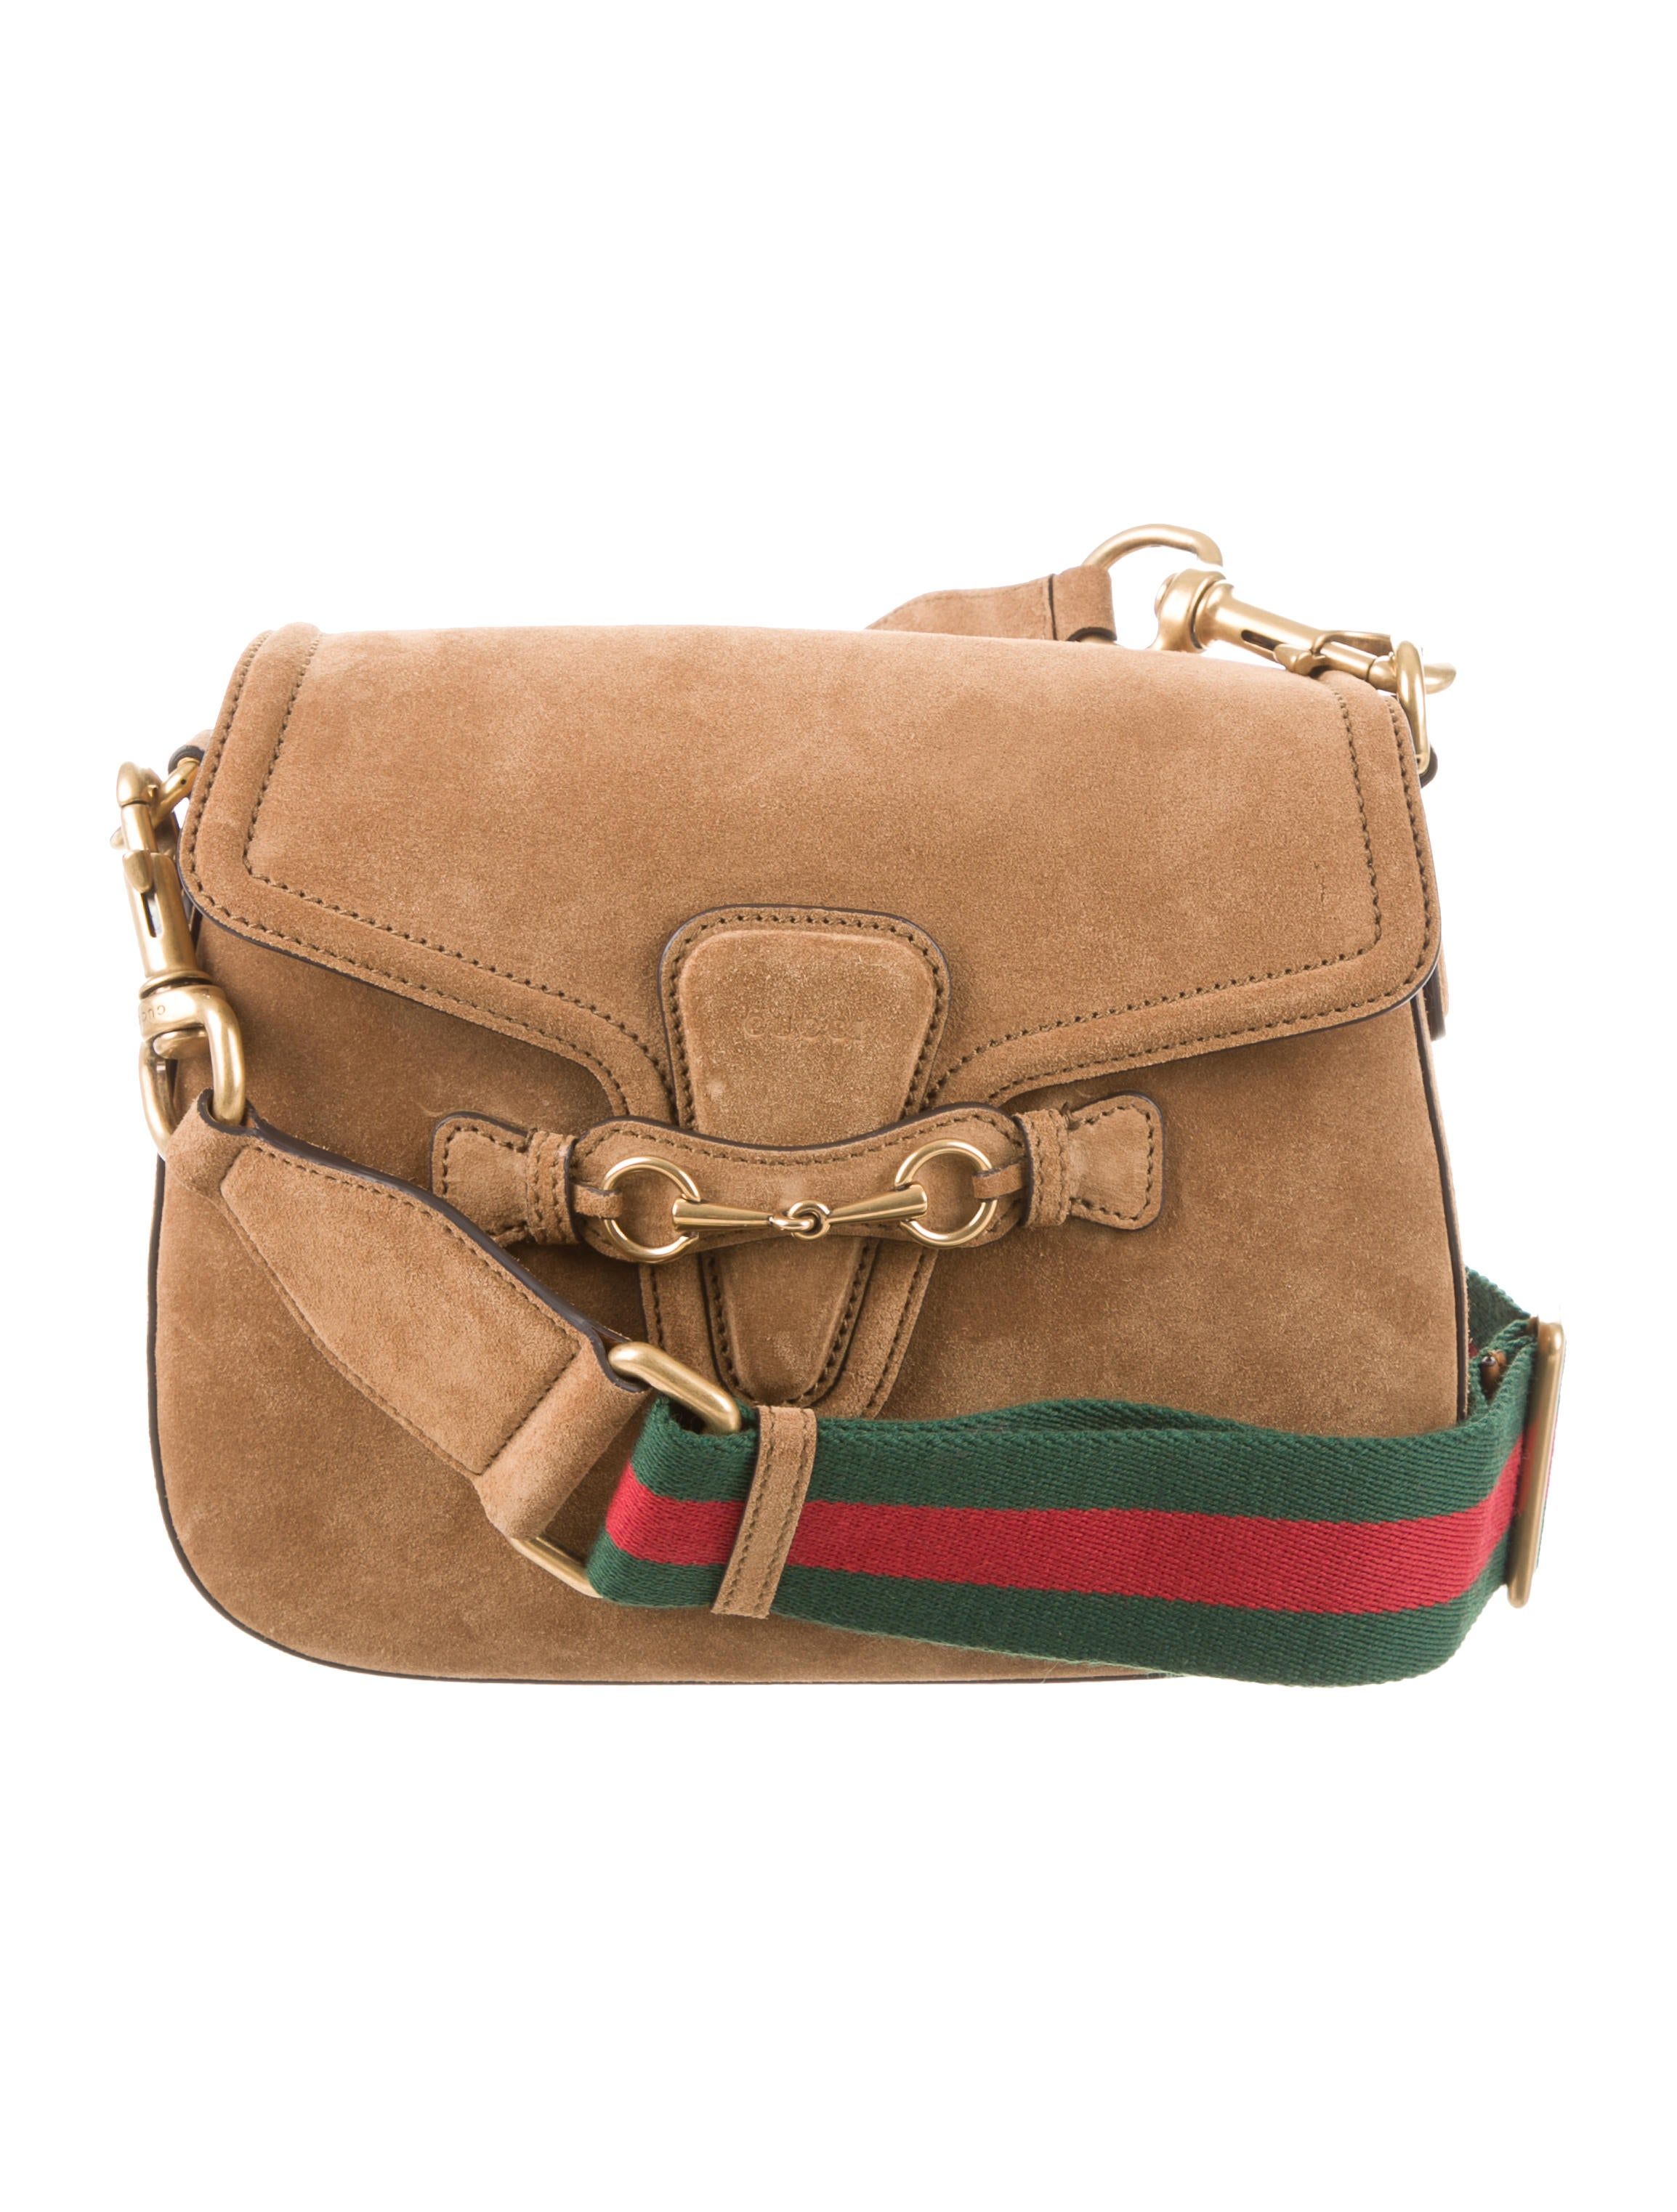 Shop for suede women's crossbody bags and other women's purses & handbags products at more. Browse our women's purses & handbags selections and save today.